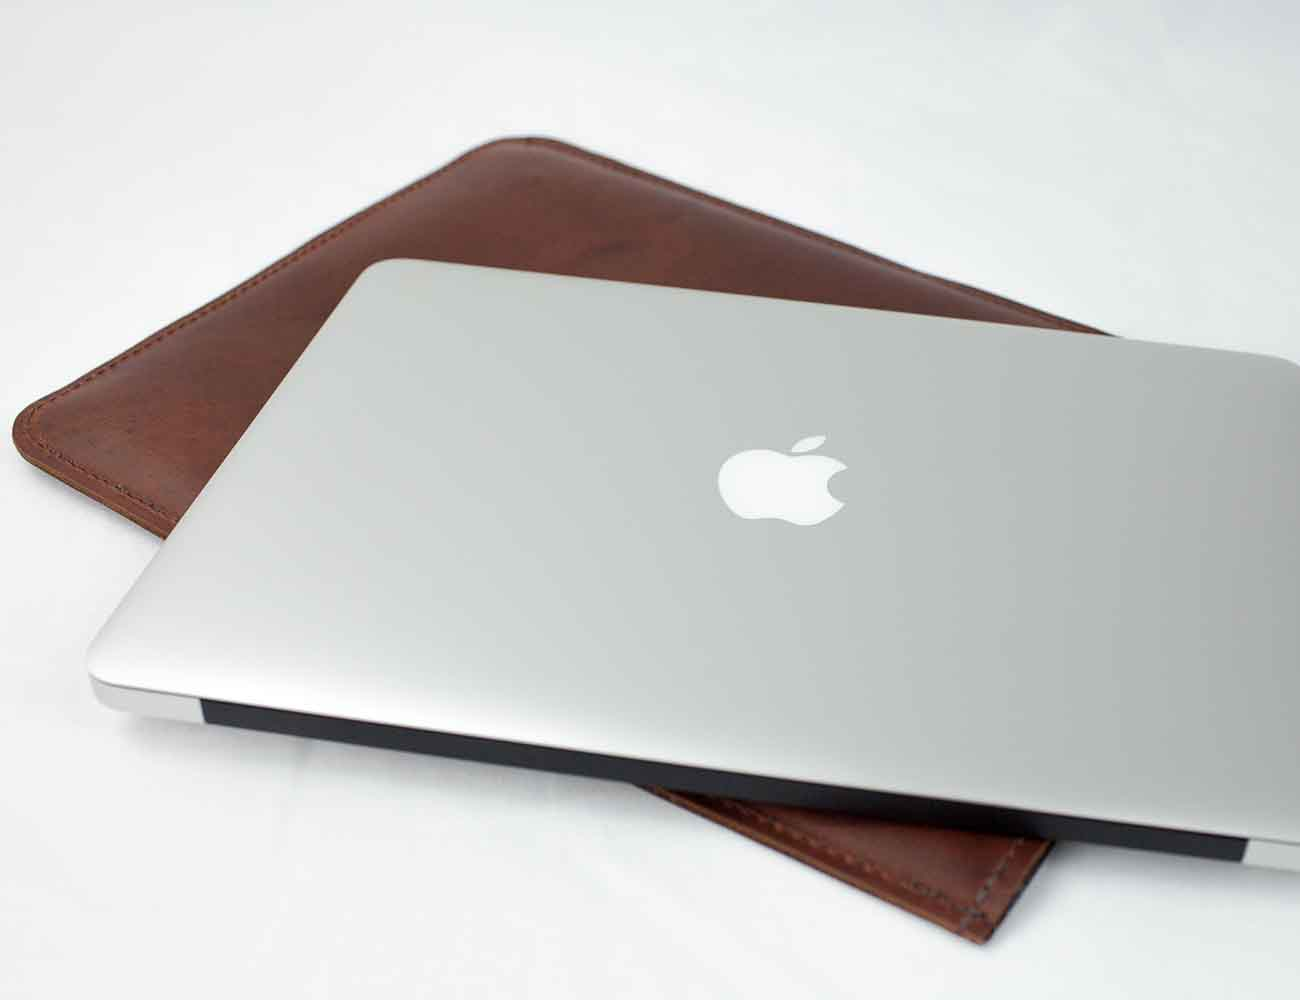 Leather+MacBook+Air+Sleeve+By+MintCases